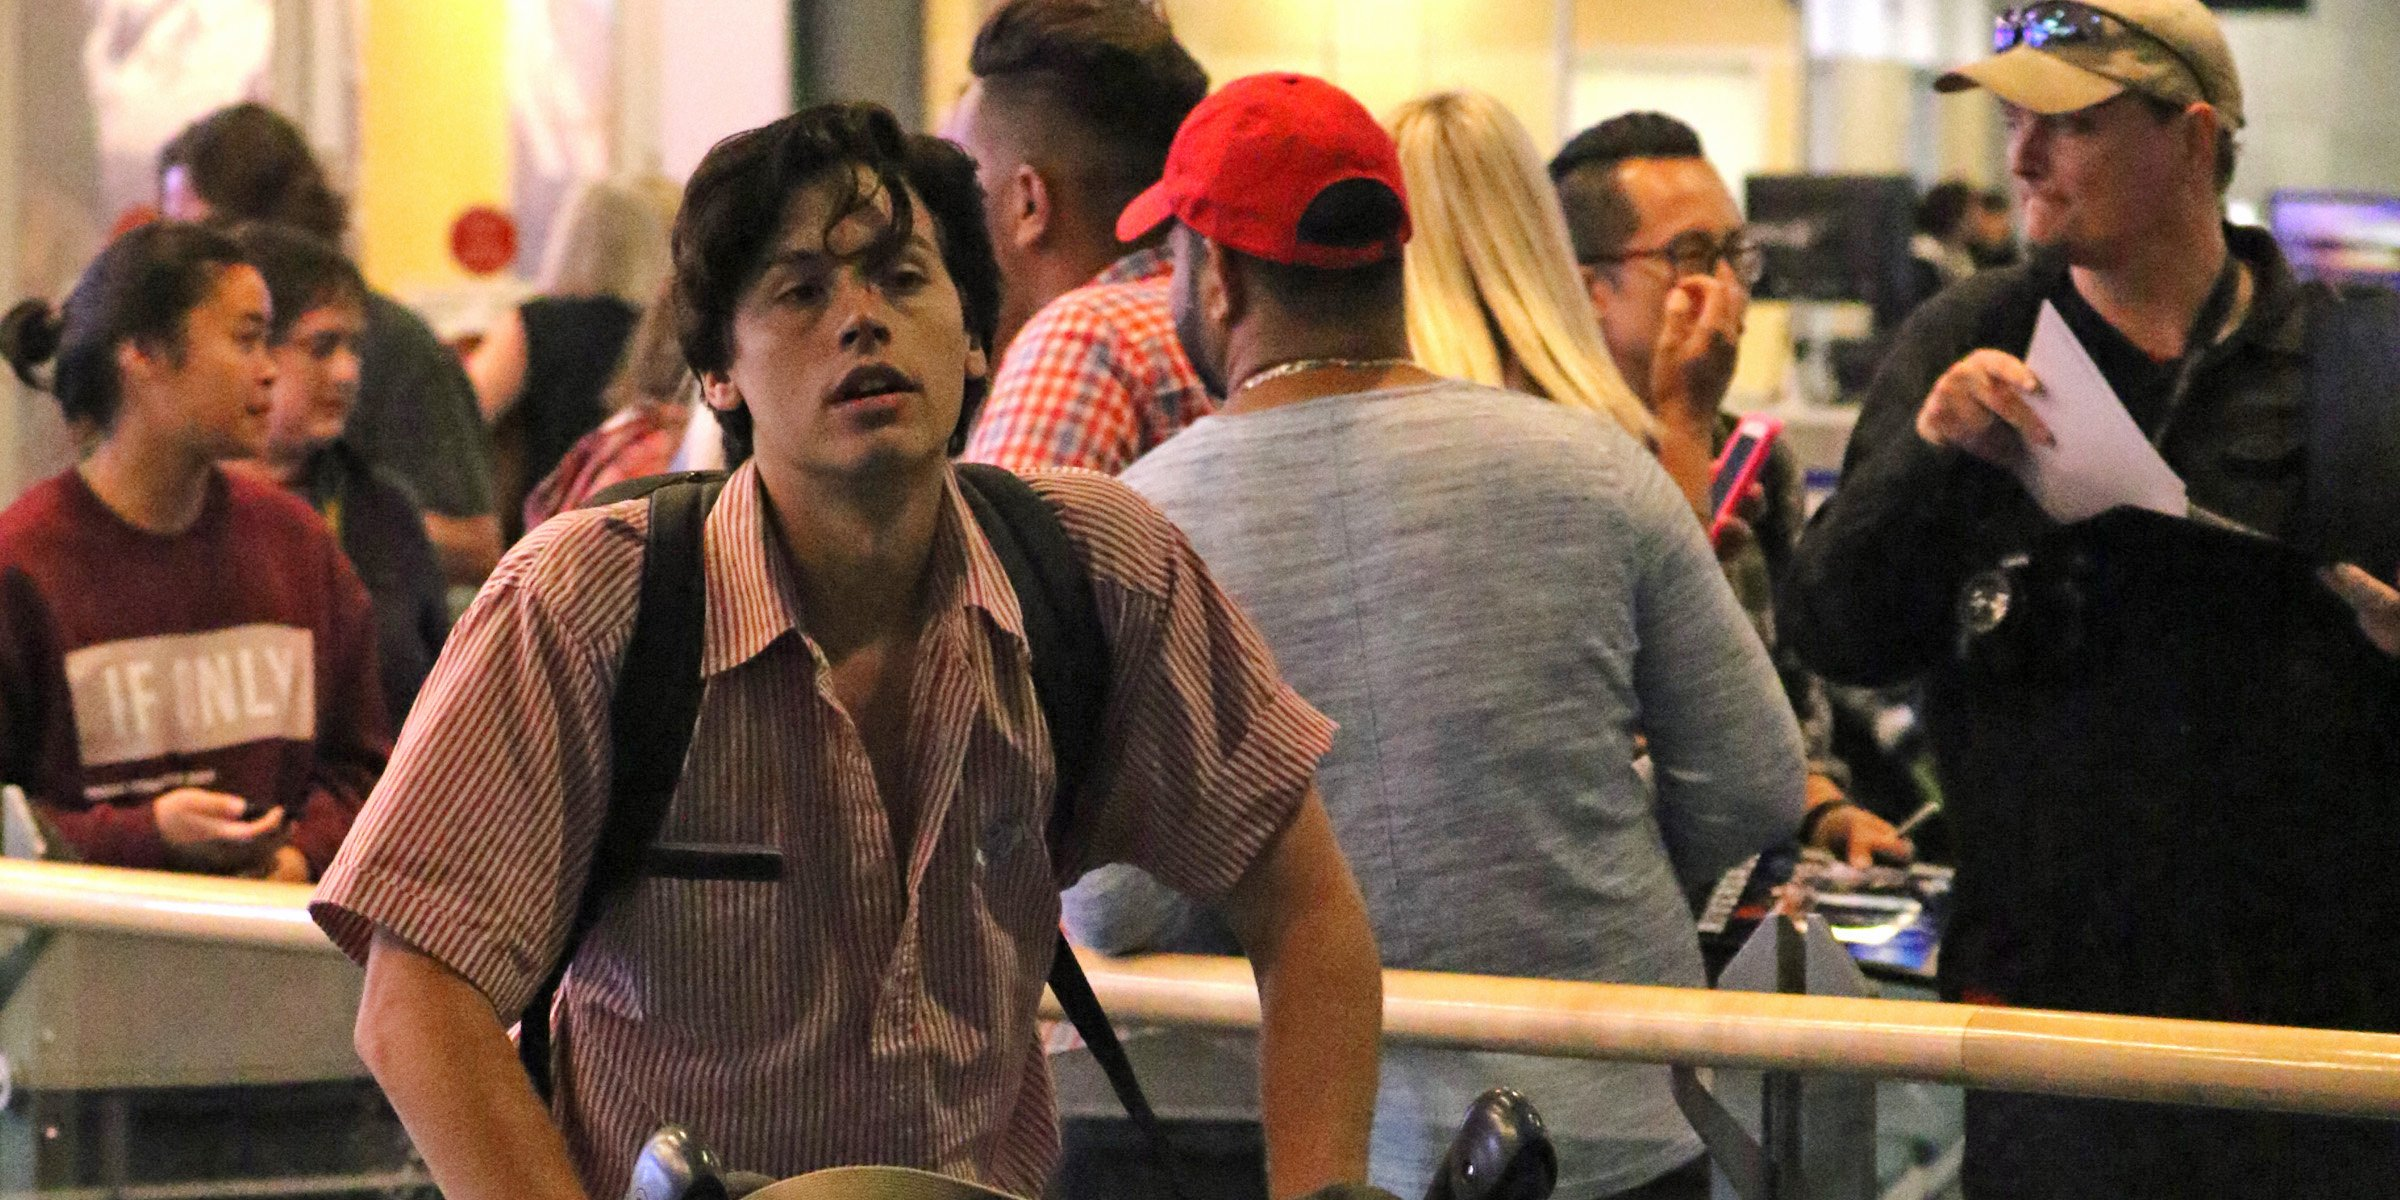 Cole Sprouse takes time for fans at Vancouver International Airport (PHOTOS)